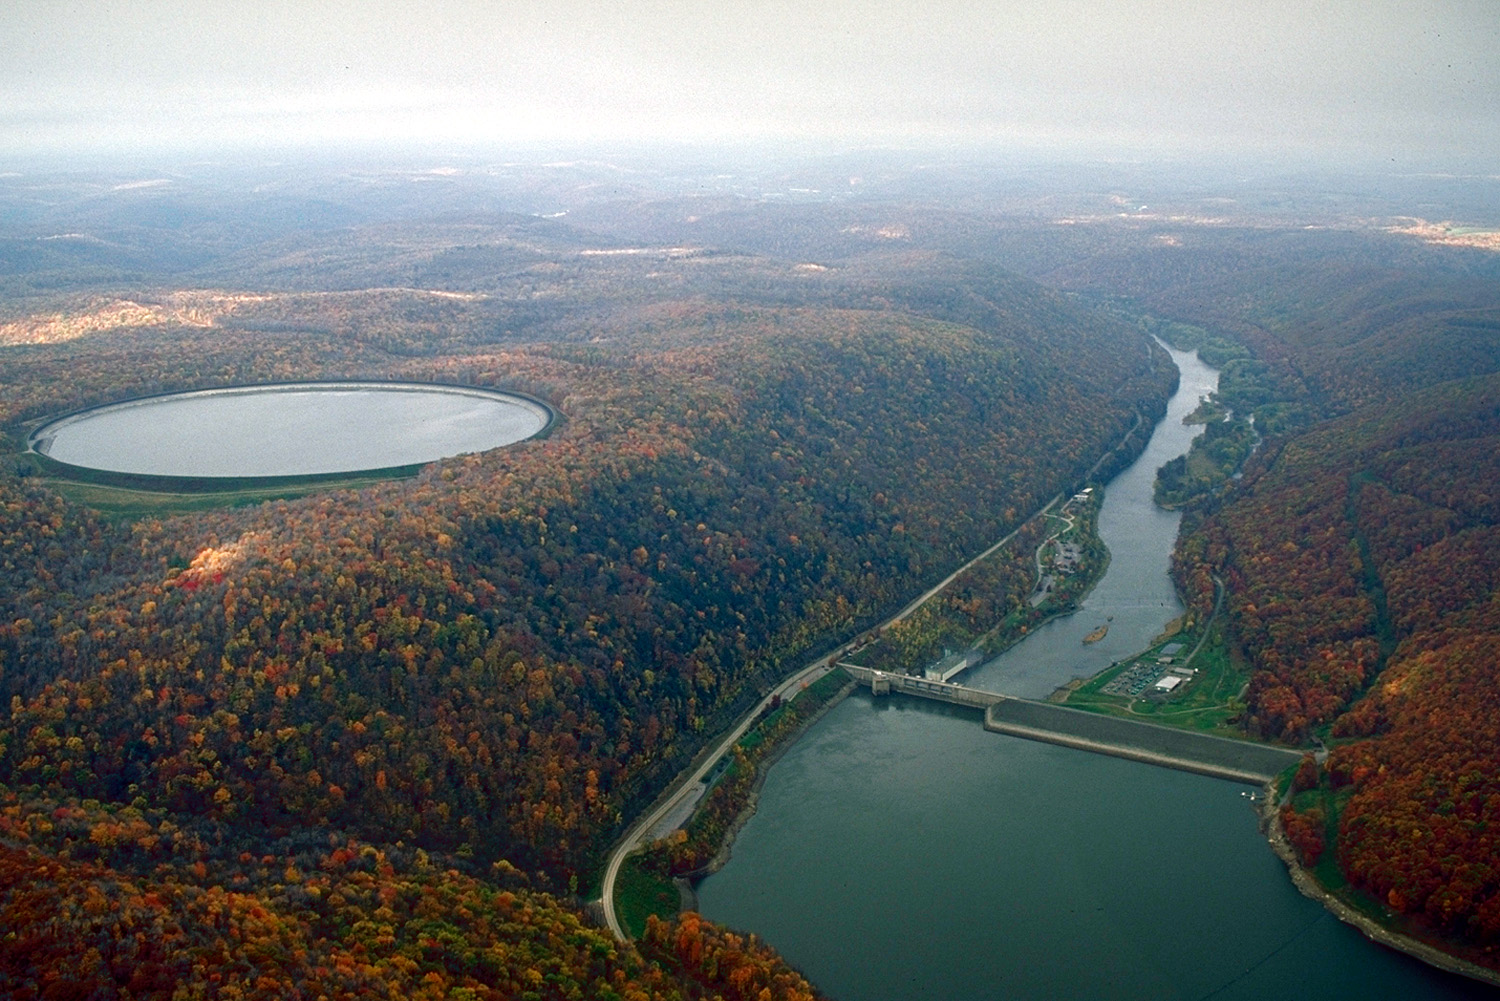 york pa map with File Usace Kinzua Dam Downriver on Coralsprings Fl together with 4850656294 also 4850026899 likewise File pittsburgh skyline7 furthermore Teri Hatcher Planes Interview.